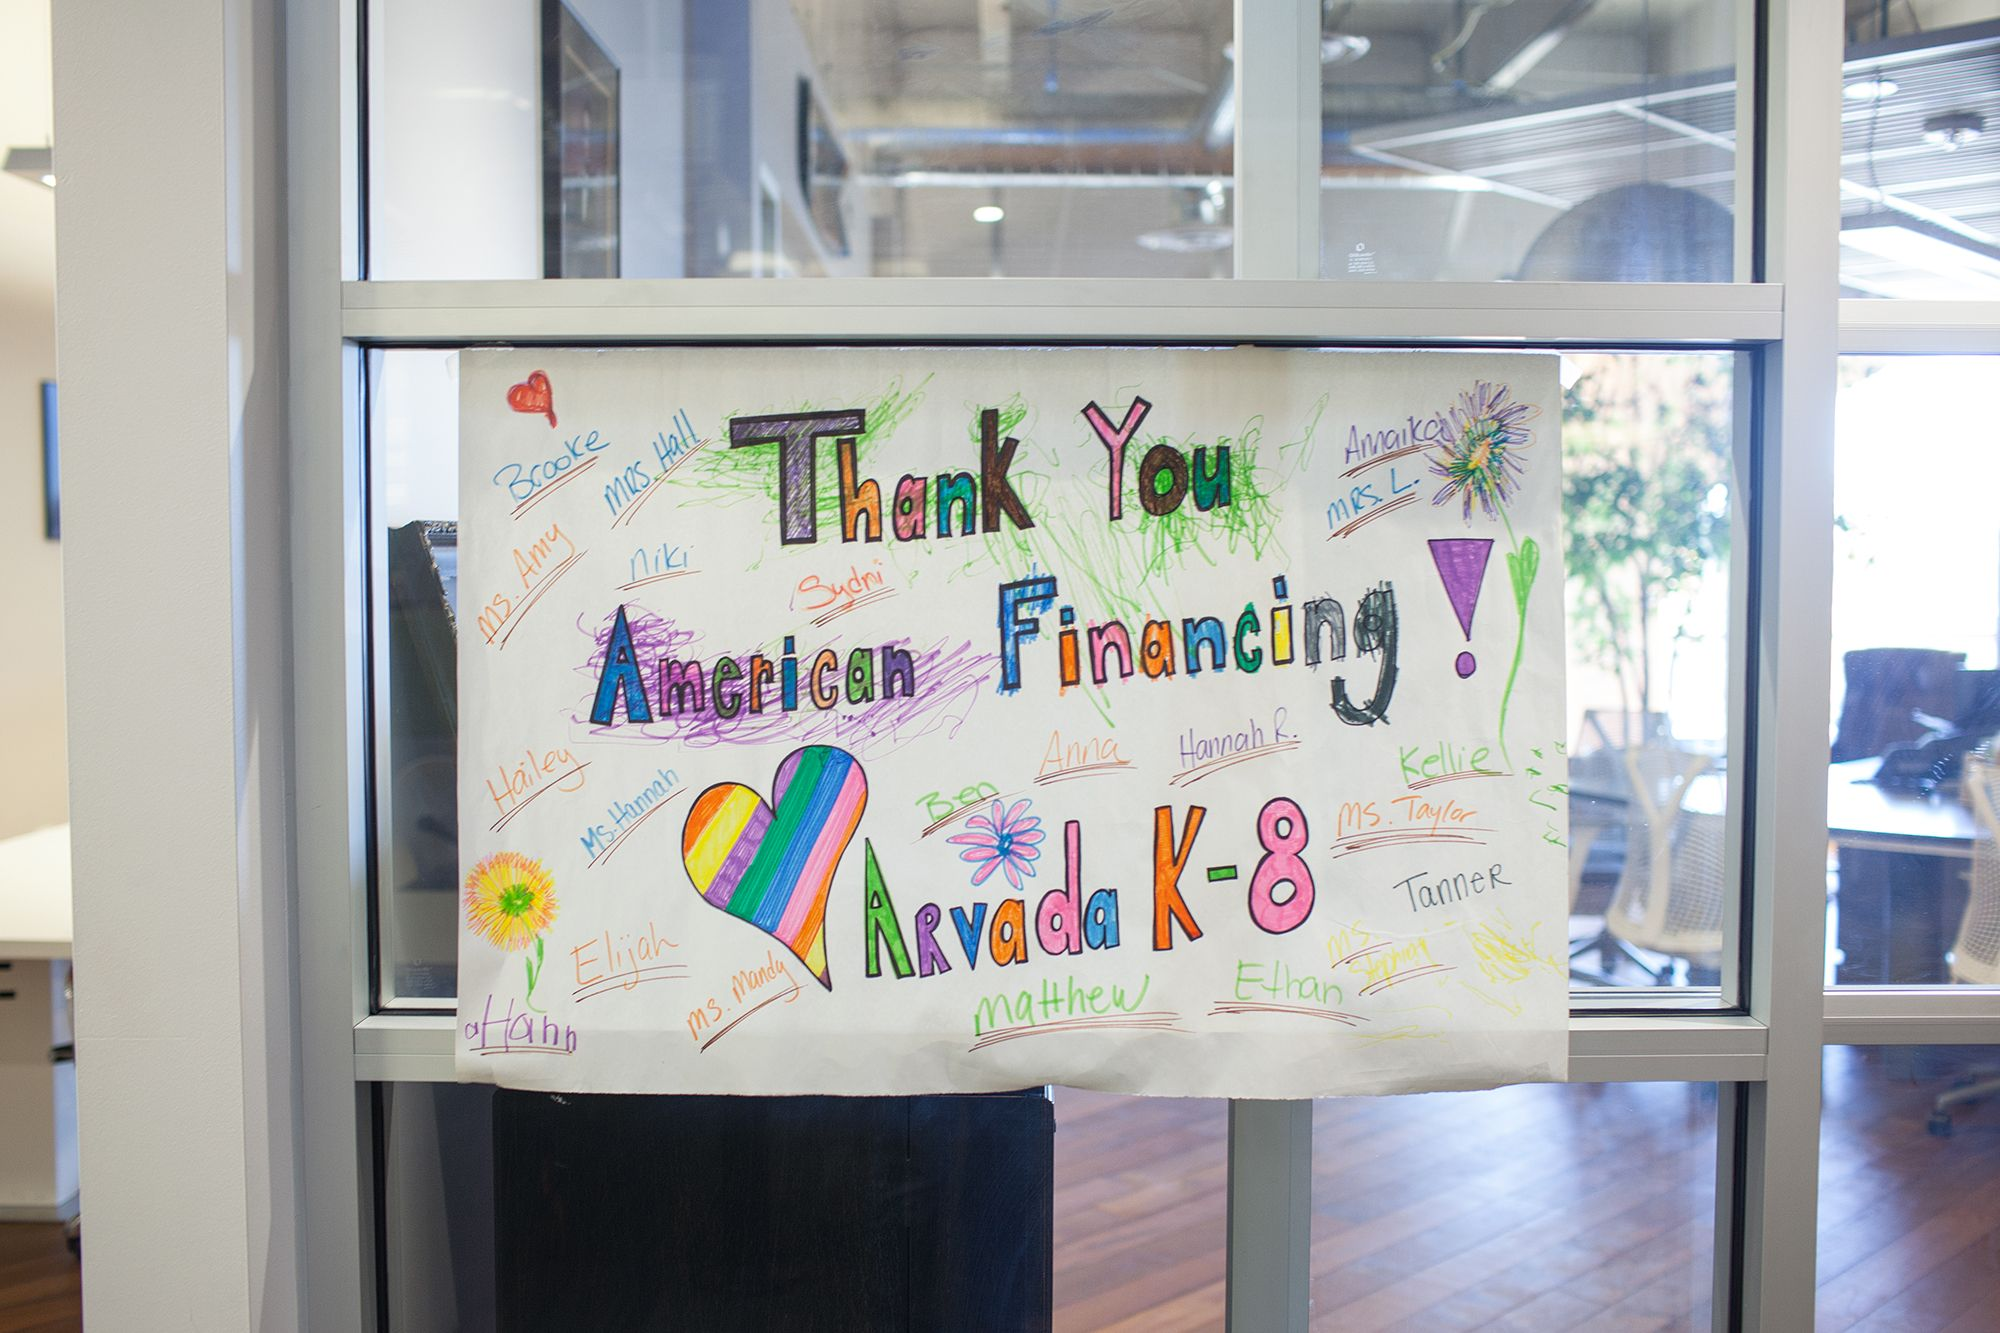 Arvada K-8 school thank you sign